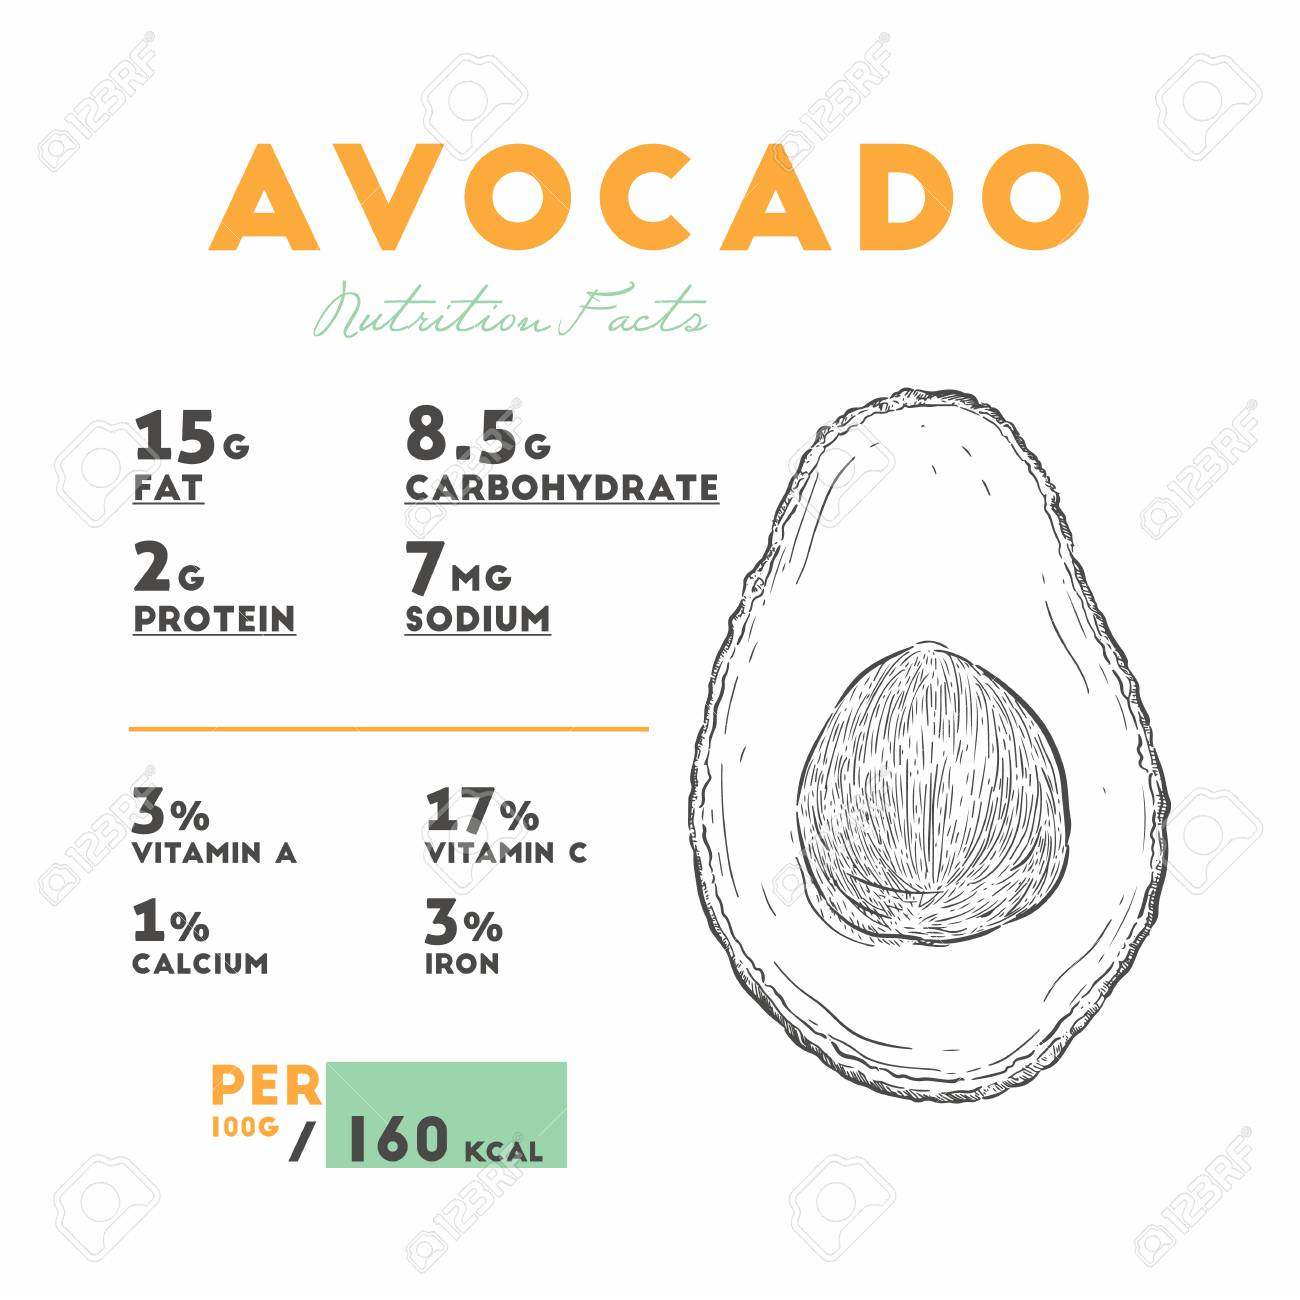 Nutrition Facts Of Avocado Hand Draw Sketch Vector Royalty Free Cliparts Vectors And Stock Illustration Image 125229362